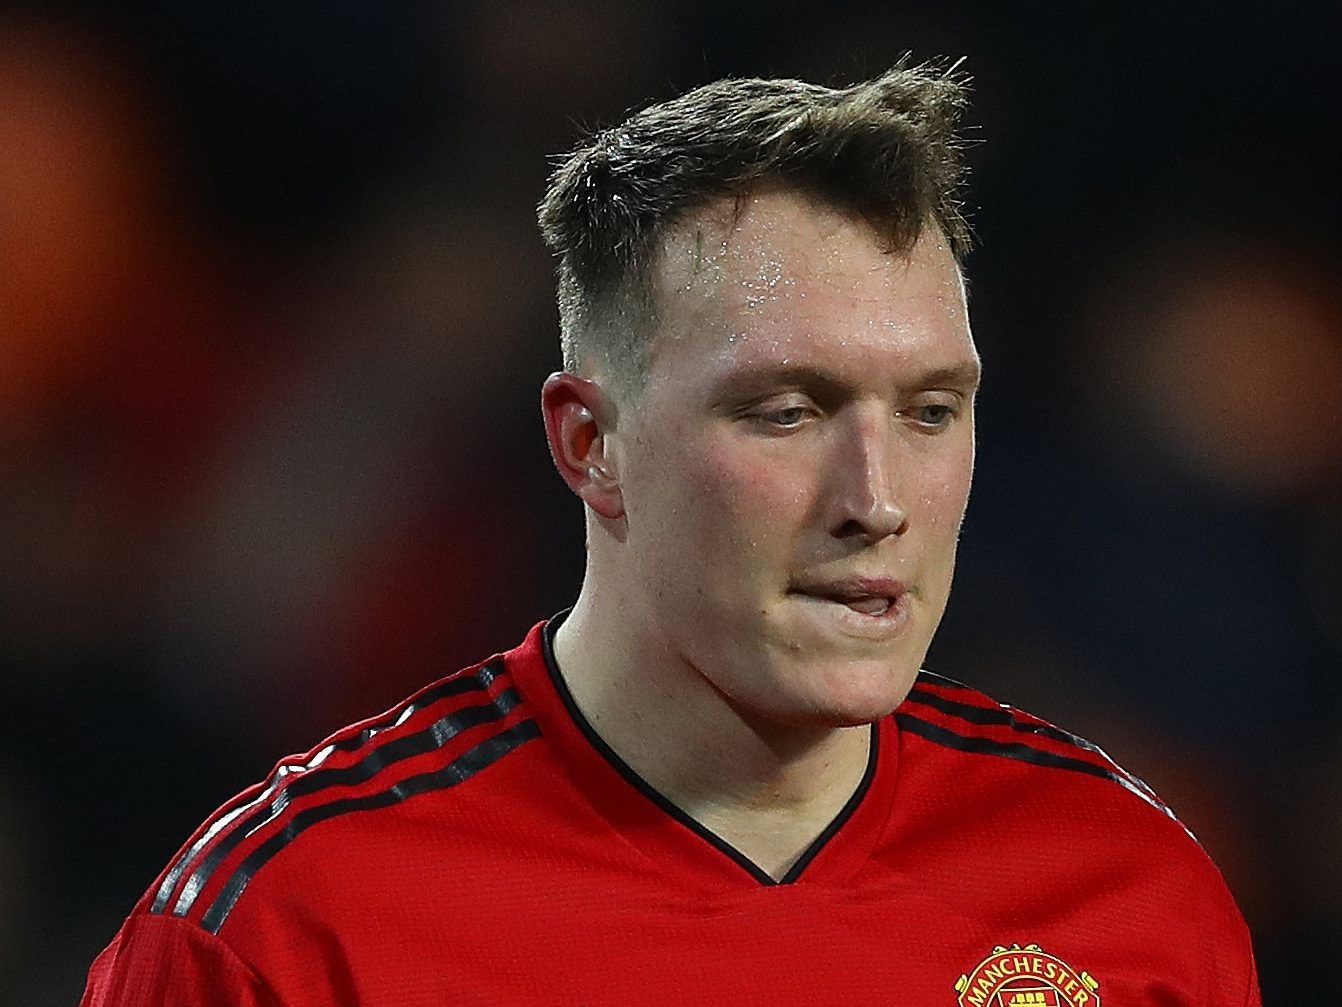 Mandatory Credit: Photo by Kieran McManus/BPI/REX (10031595al) Phil Jones of Manchester United shows a look of dejection Valencia v Manchester United, UEFA Champions League Group H, Football, Mestalla Stadium, Valencia, Spain - 12 Dec 2018